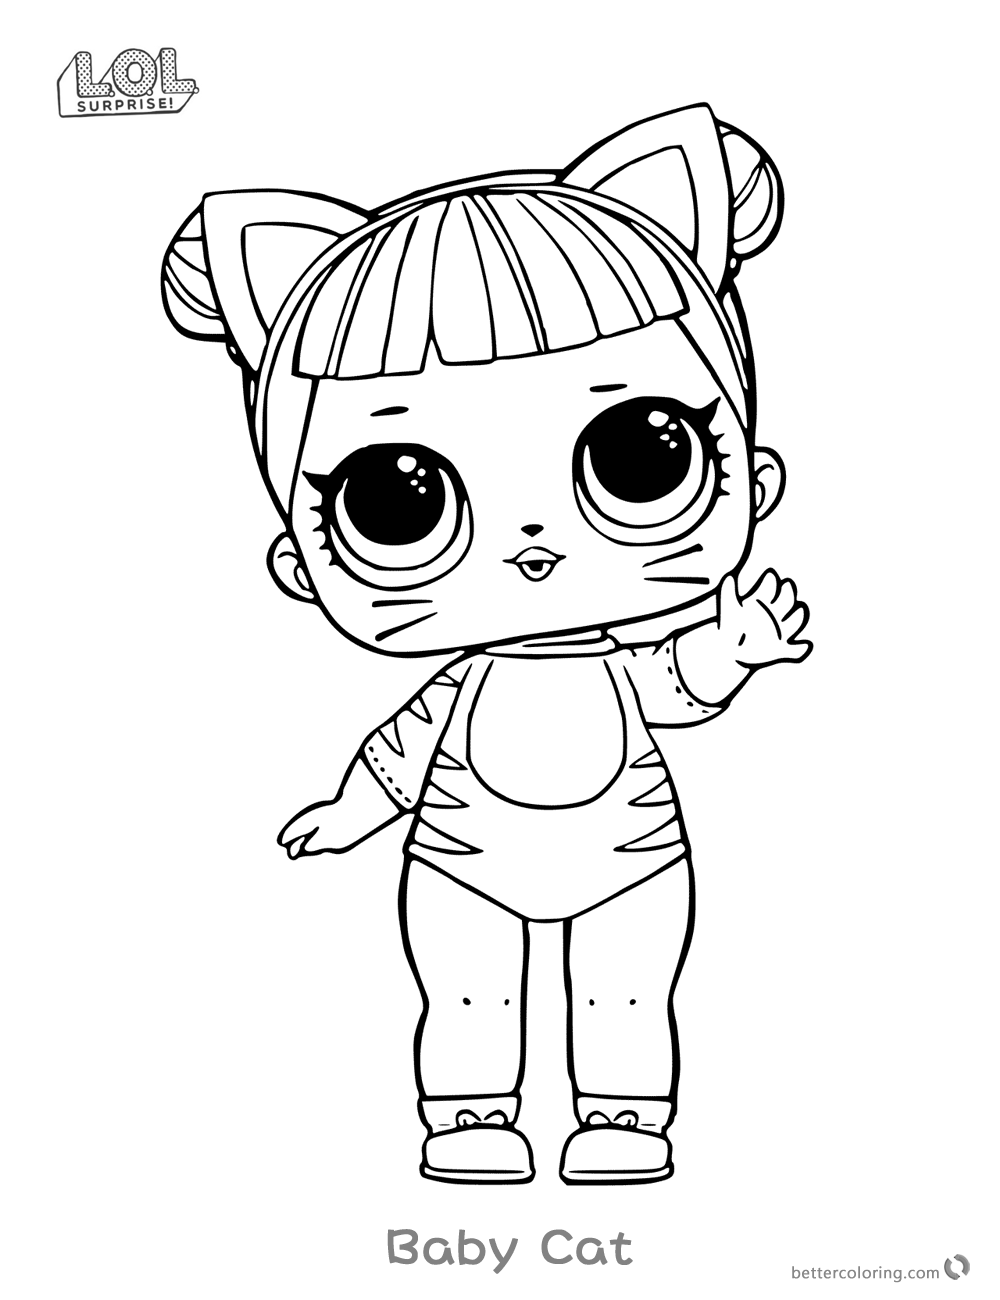 1000x1300 Lol Surprise Doll Coloring Pages Series Baby Cat